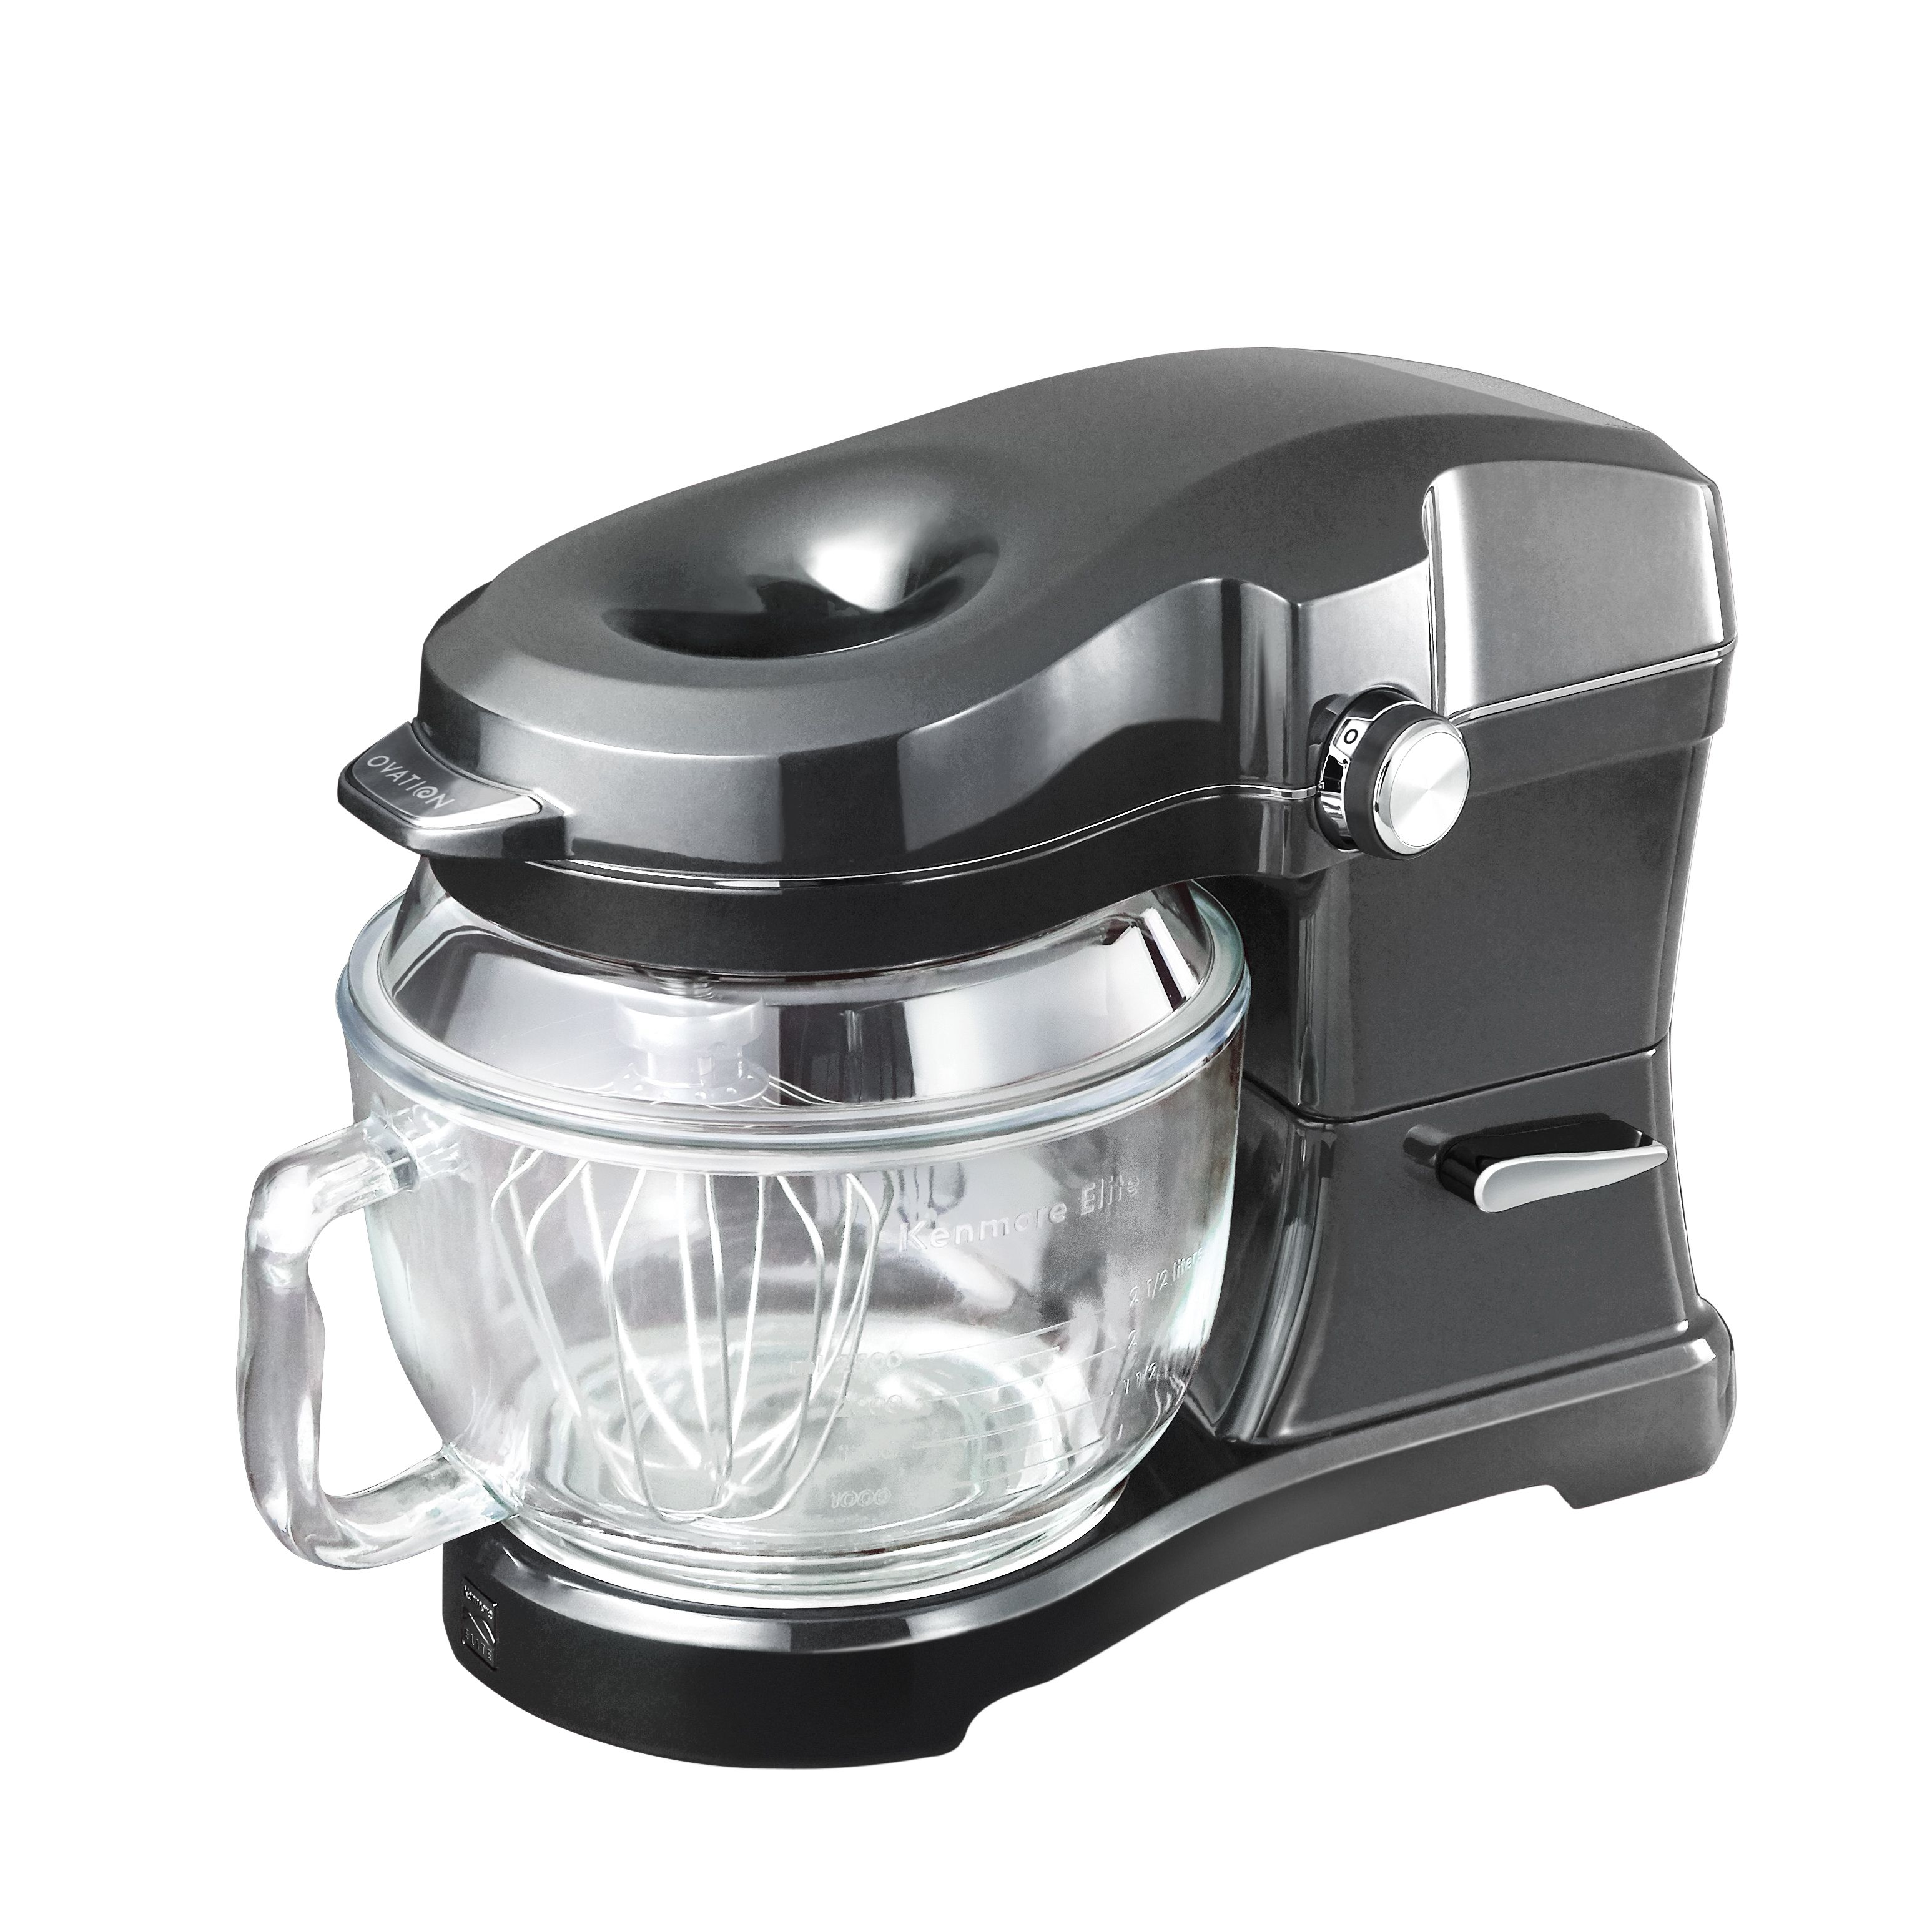 Kenmore elite ovation stand mixer equal parts innovative